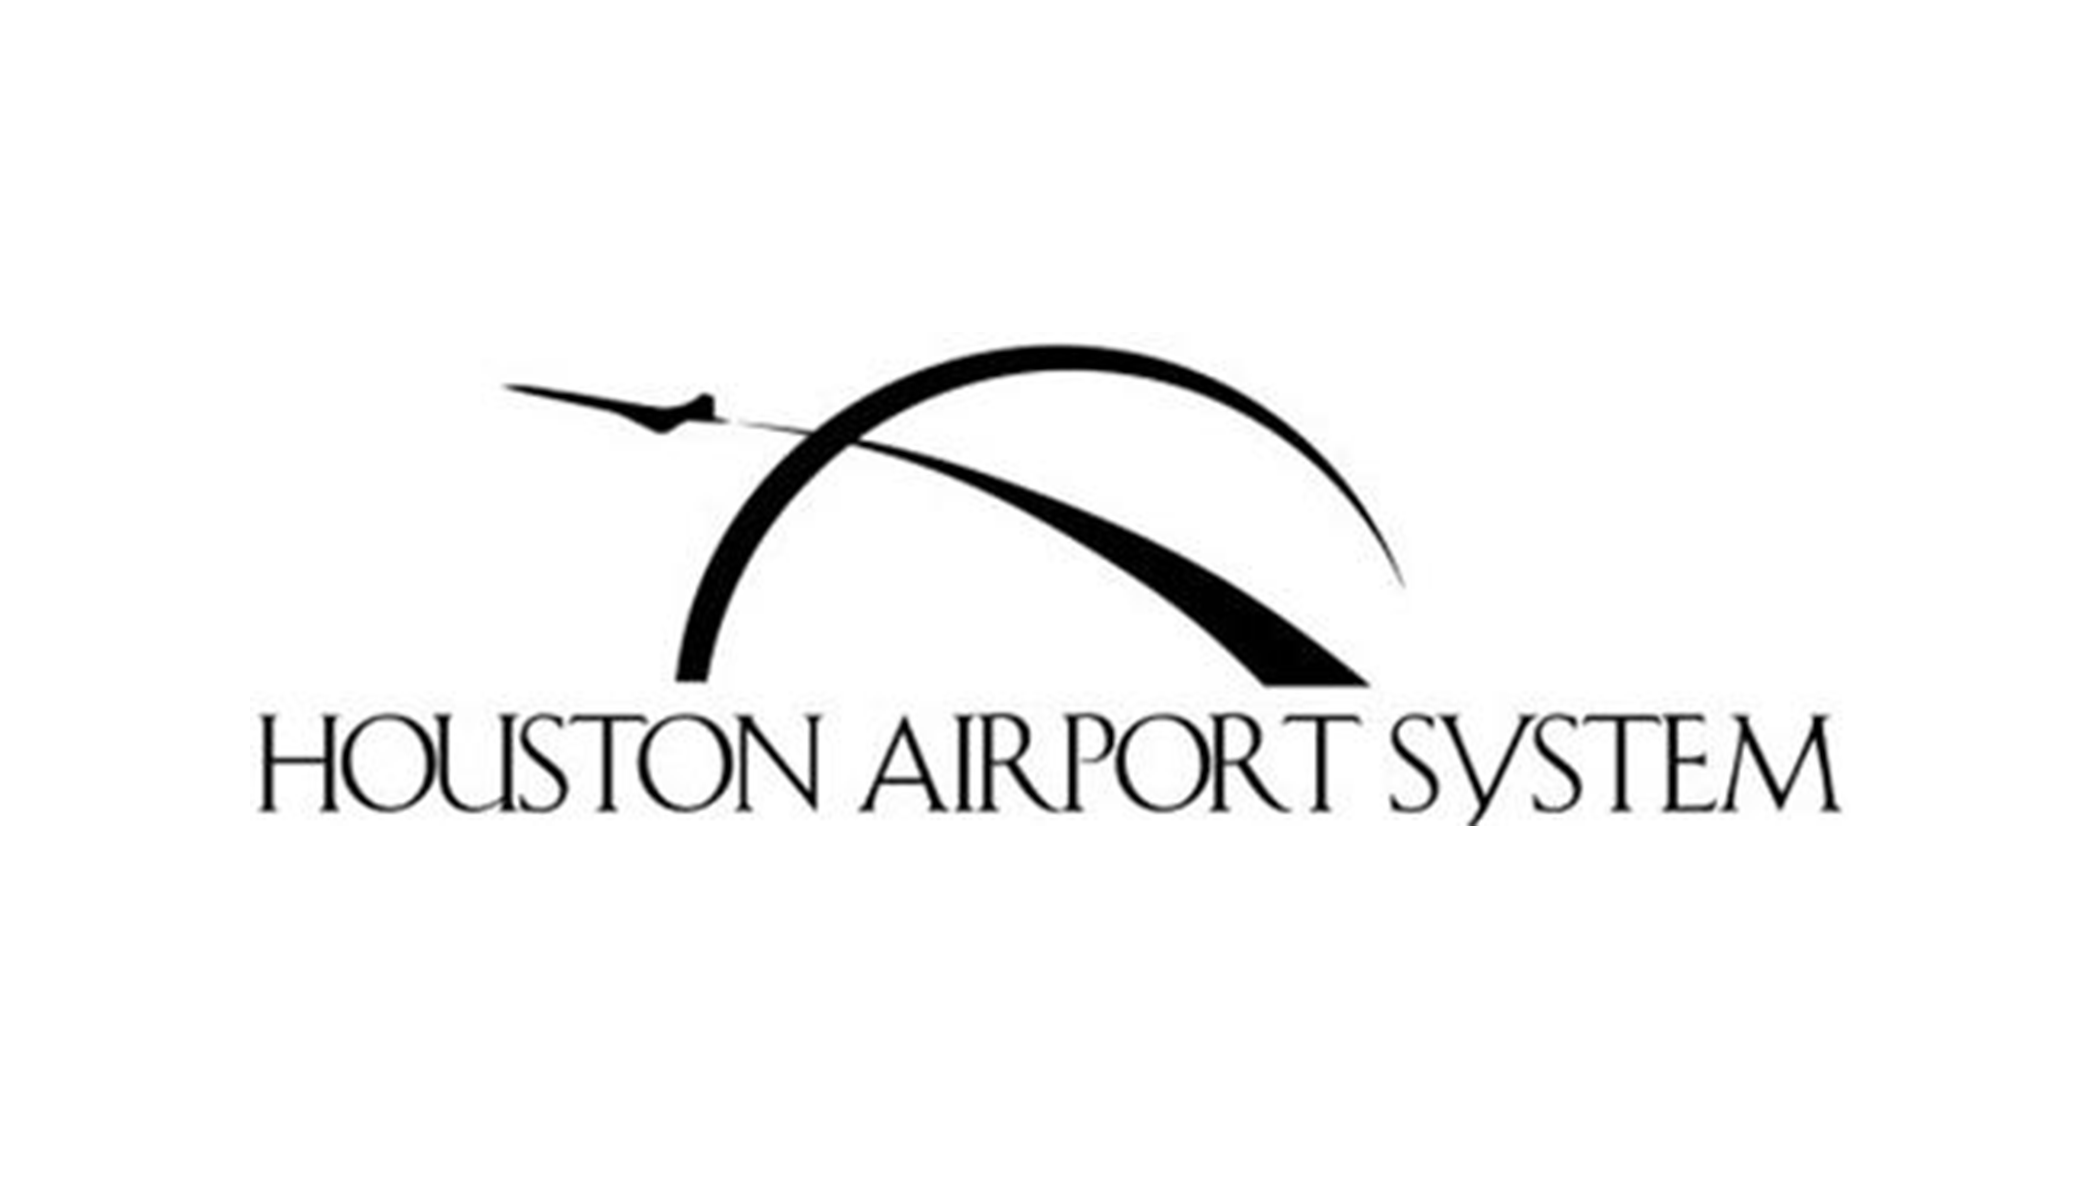 Houston Airport System logo